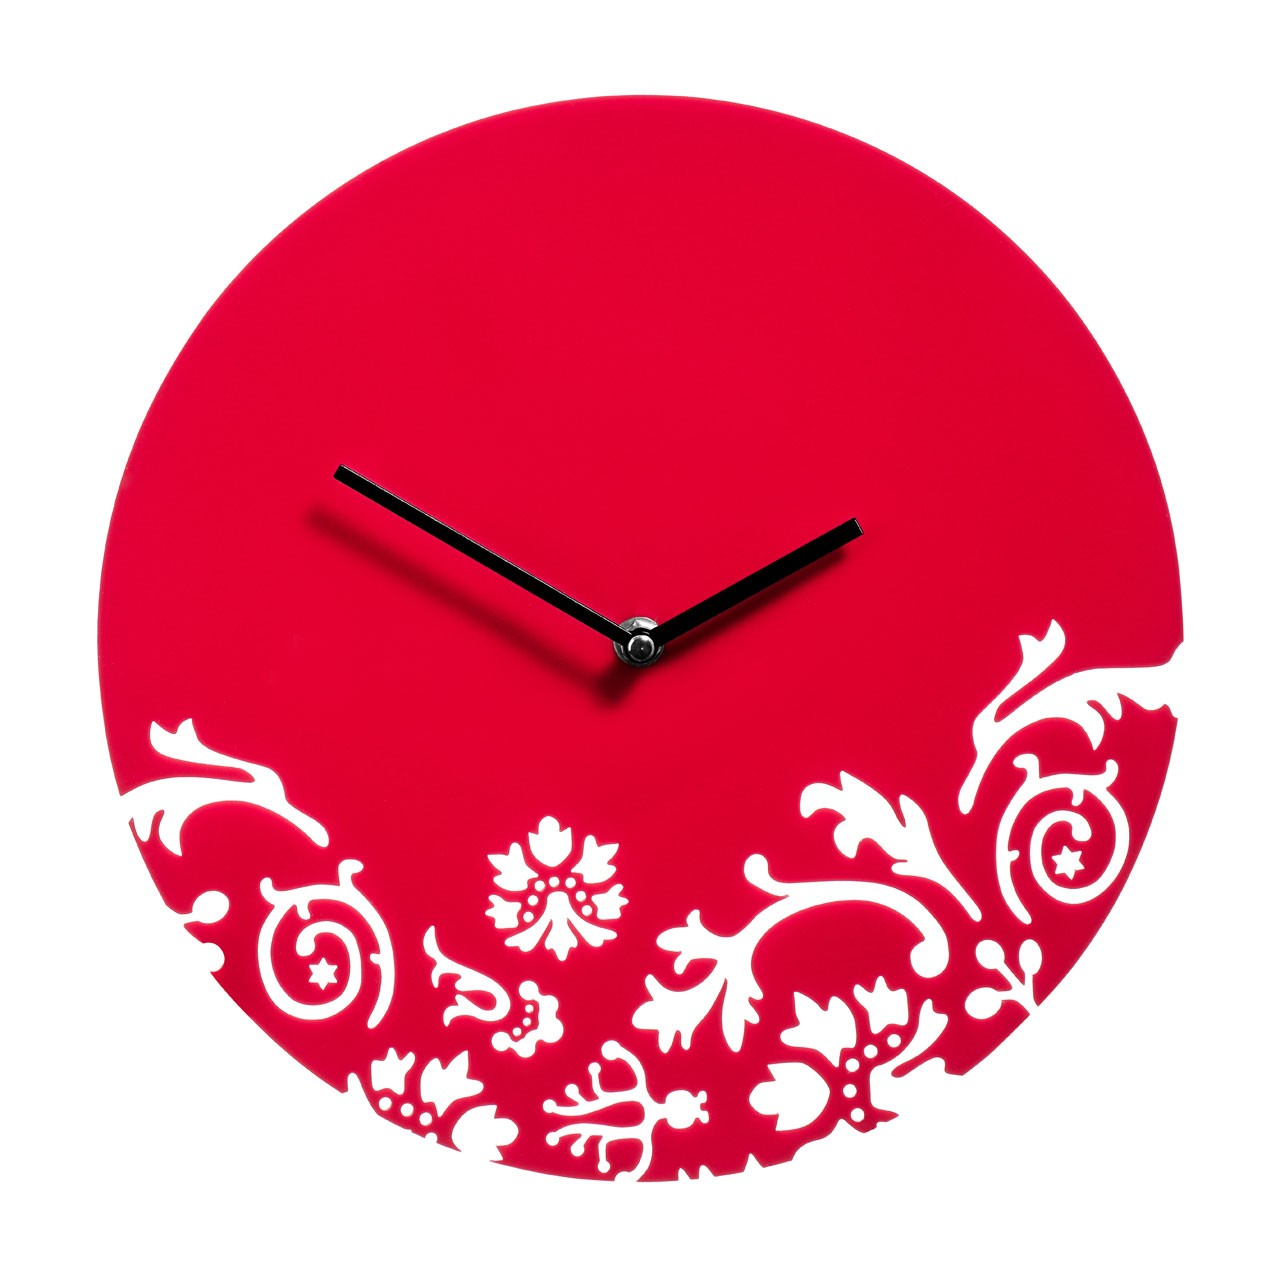 Prime Furnishing Floral Swirl Wall Clock - Red